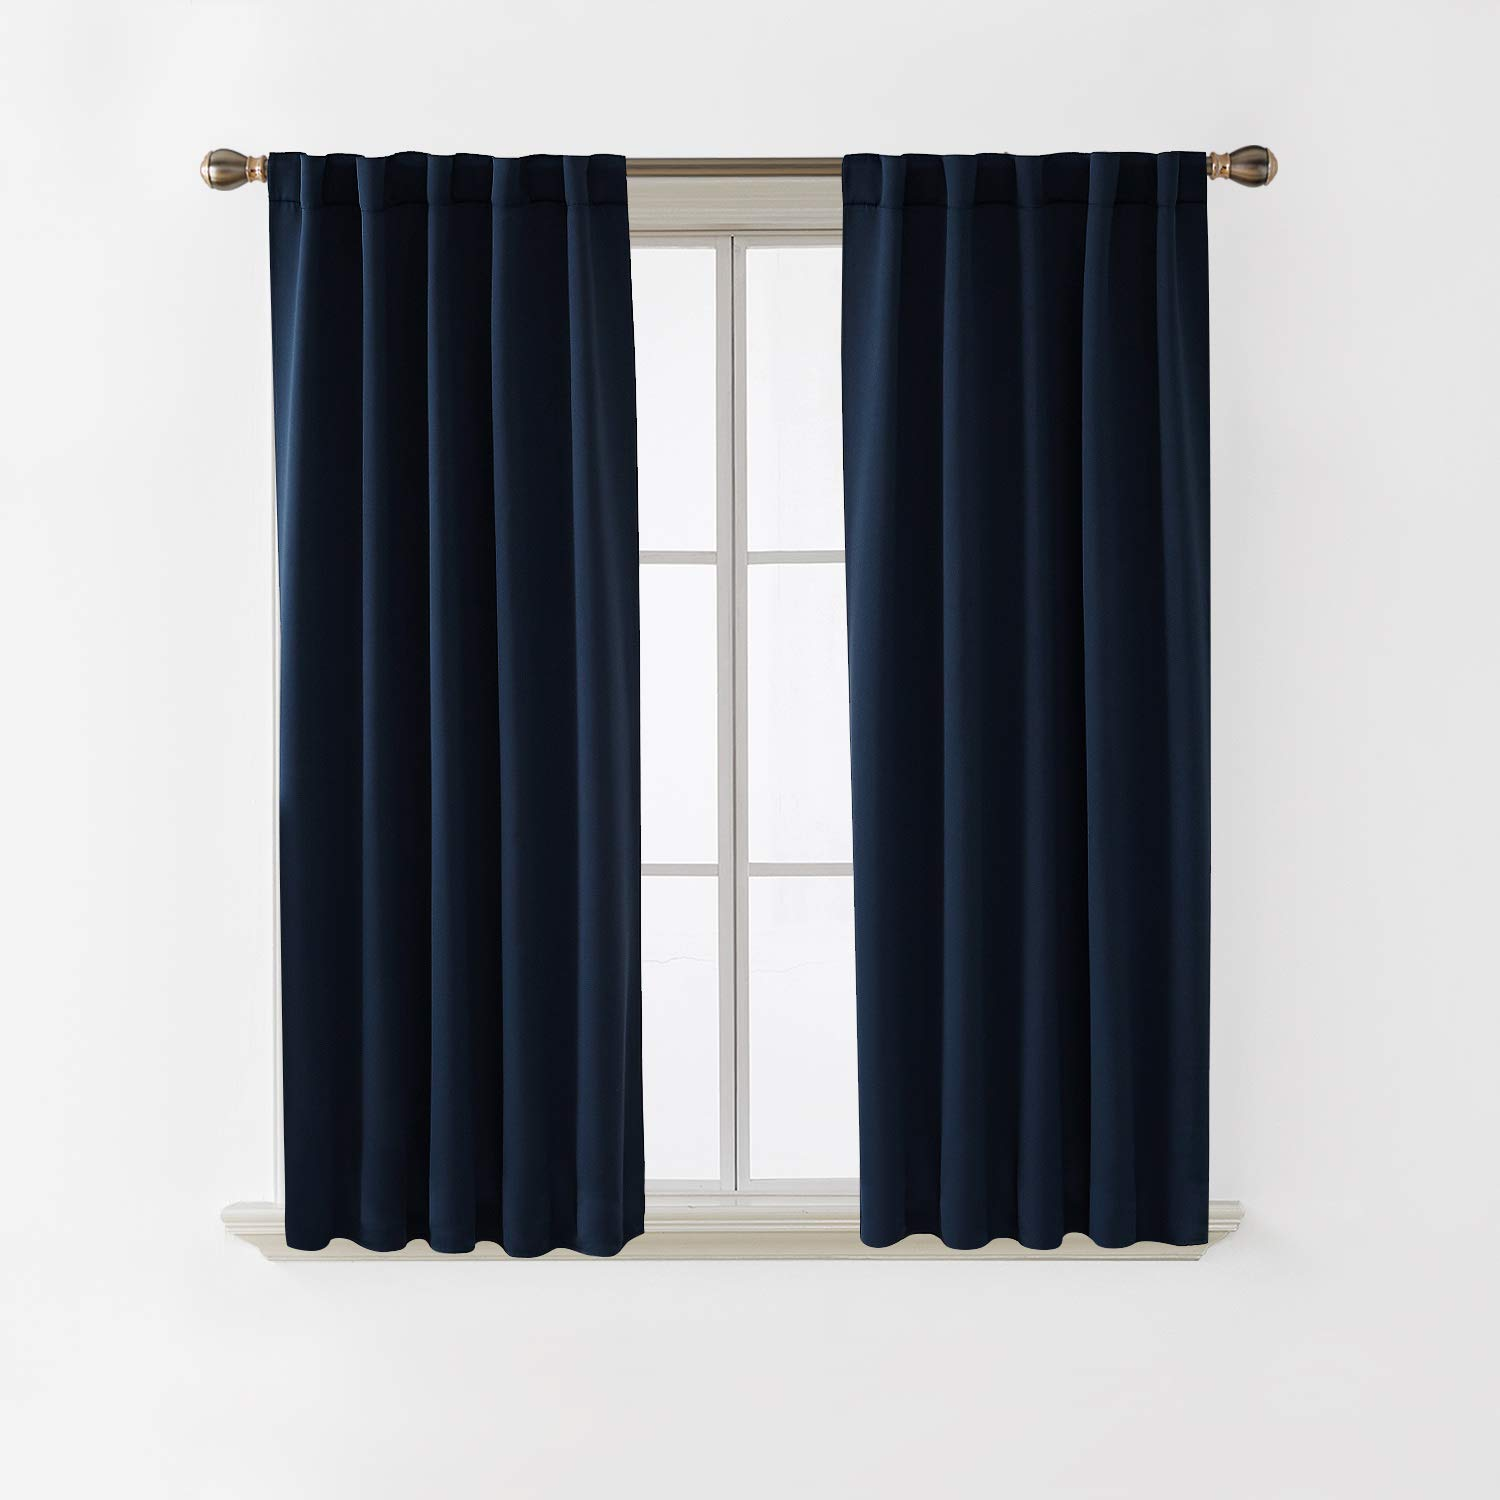 Deconovo Black Blackout Curtains for Kitchen Window Thermal Insulated Rod Pocket and Back Tab Curtains 42x45 Inch 2 Panels